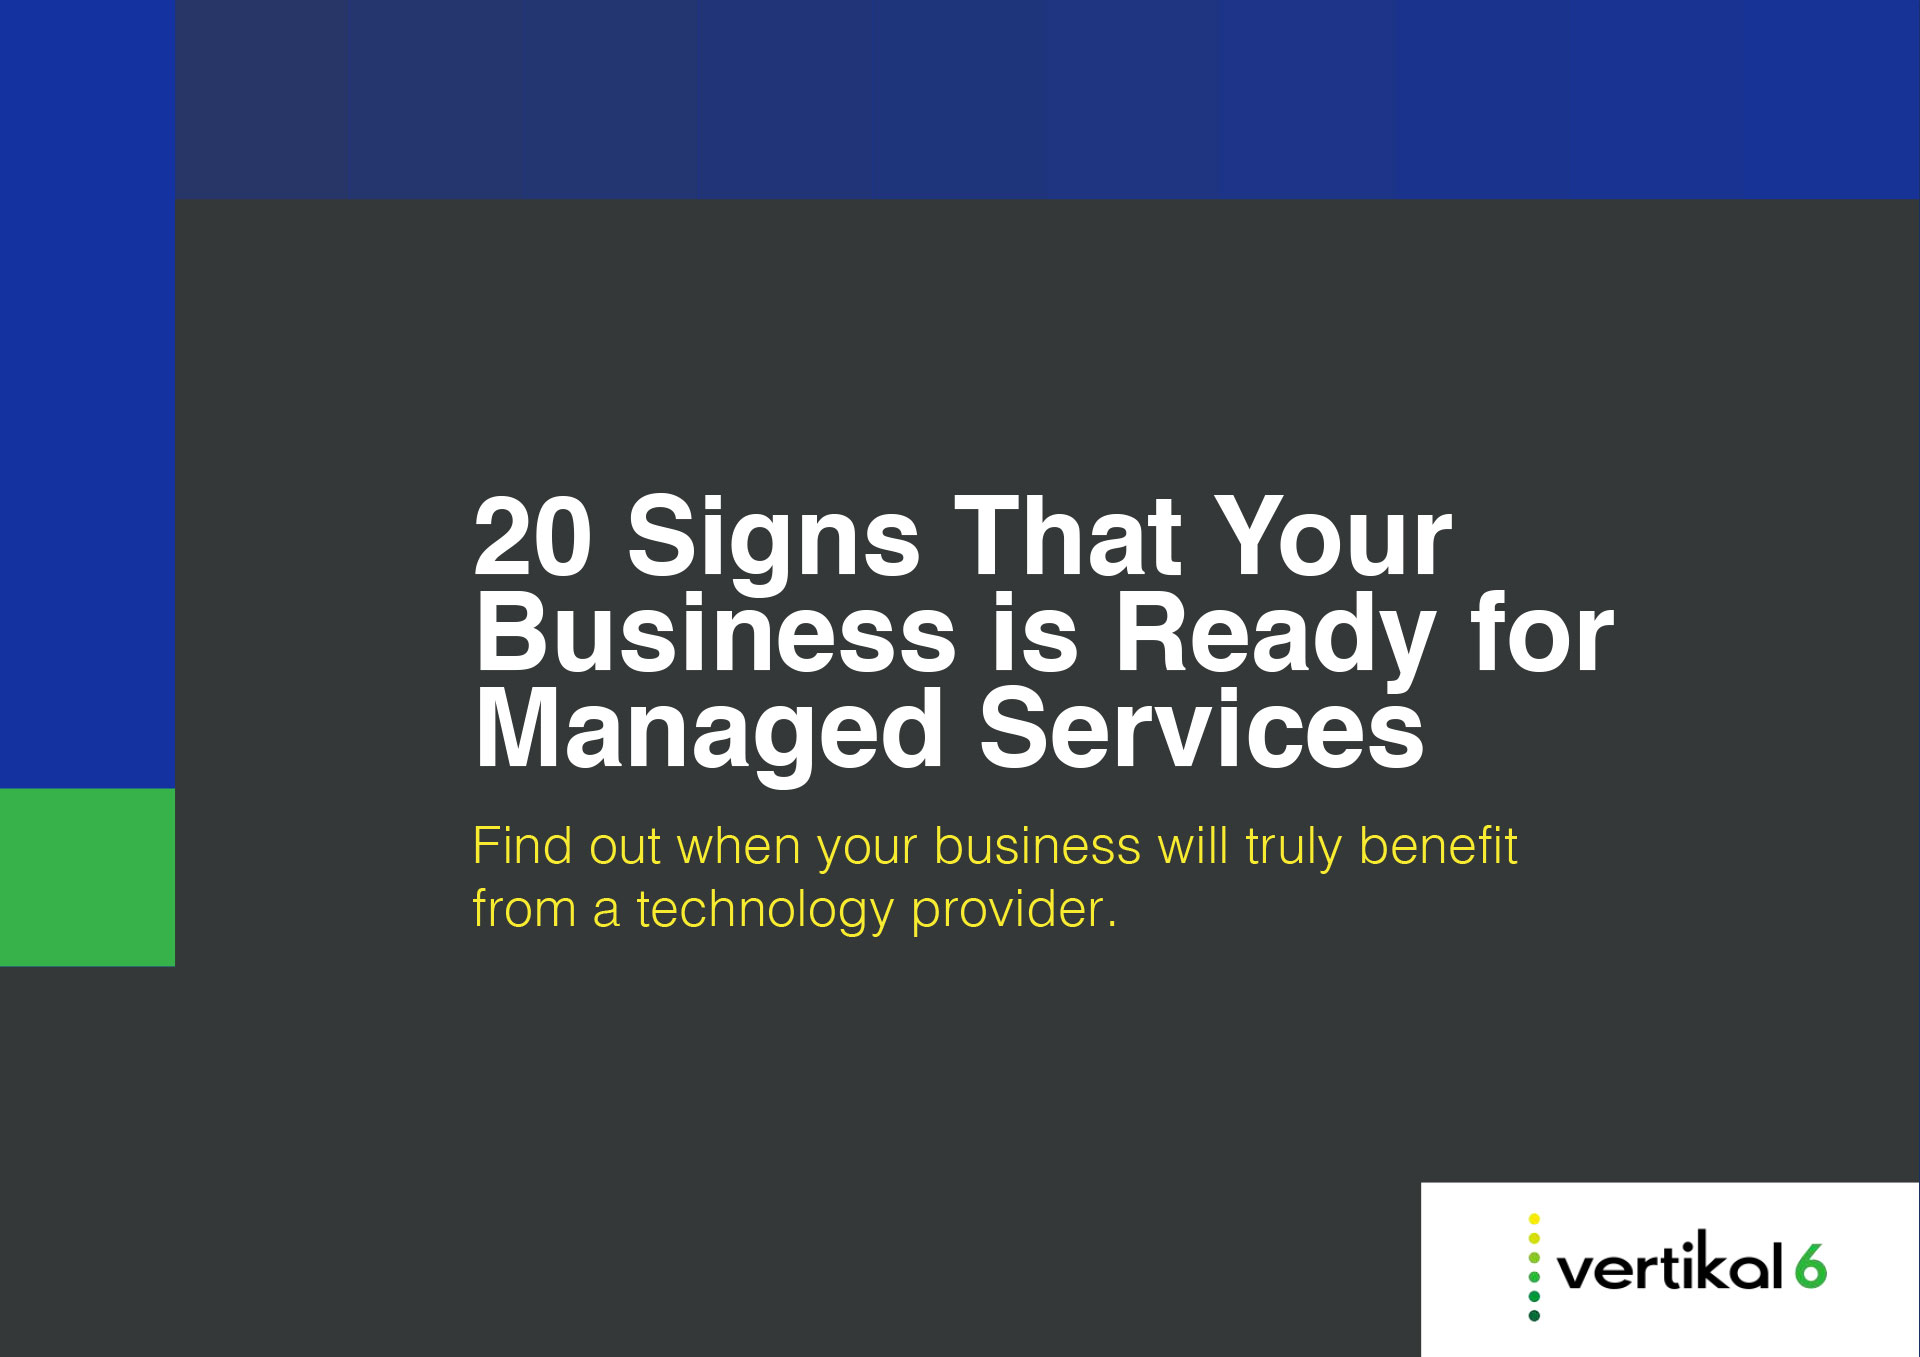 20 Signs Your Business Is Ready for Managed Services